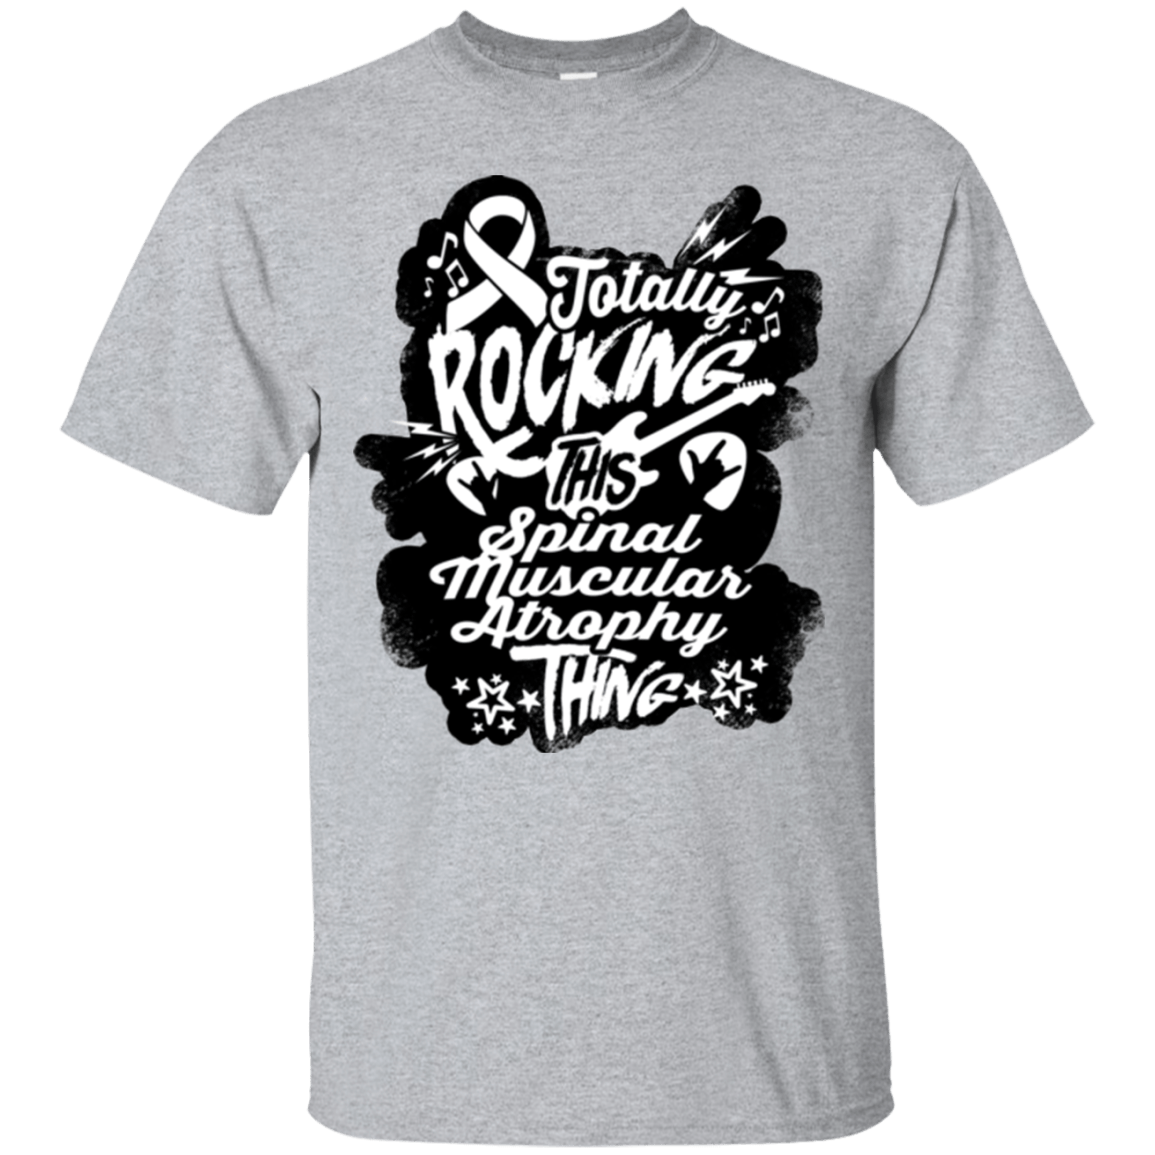 T-Shirts - Rocking Spinal Muscular Atrophy Unisex Shirt